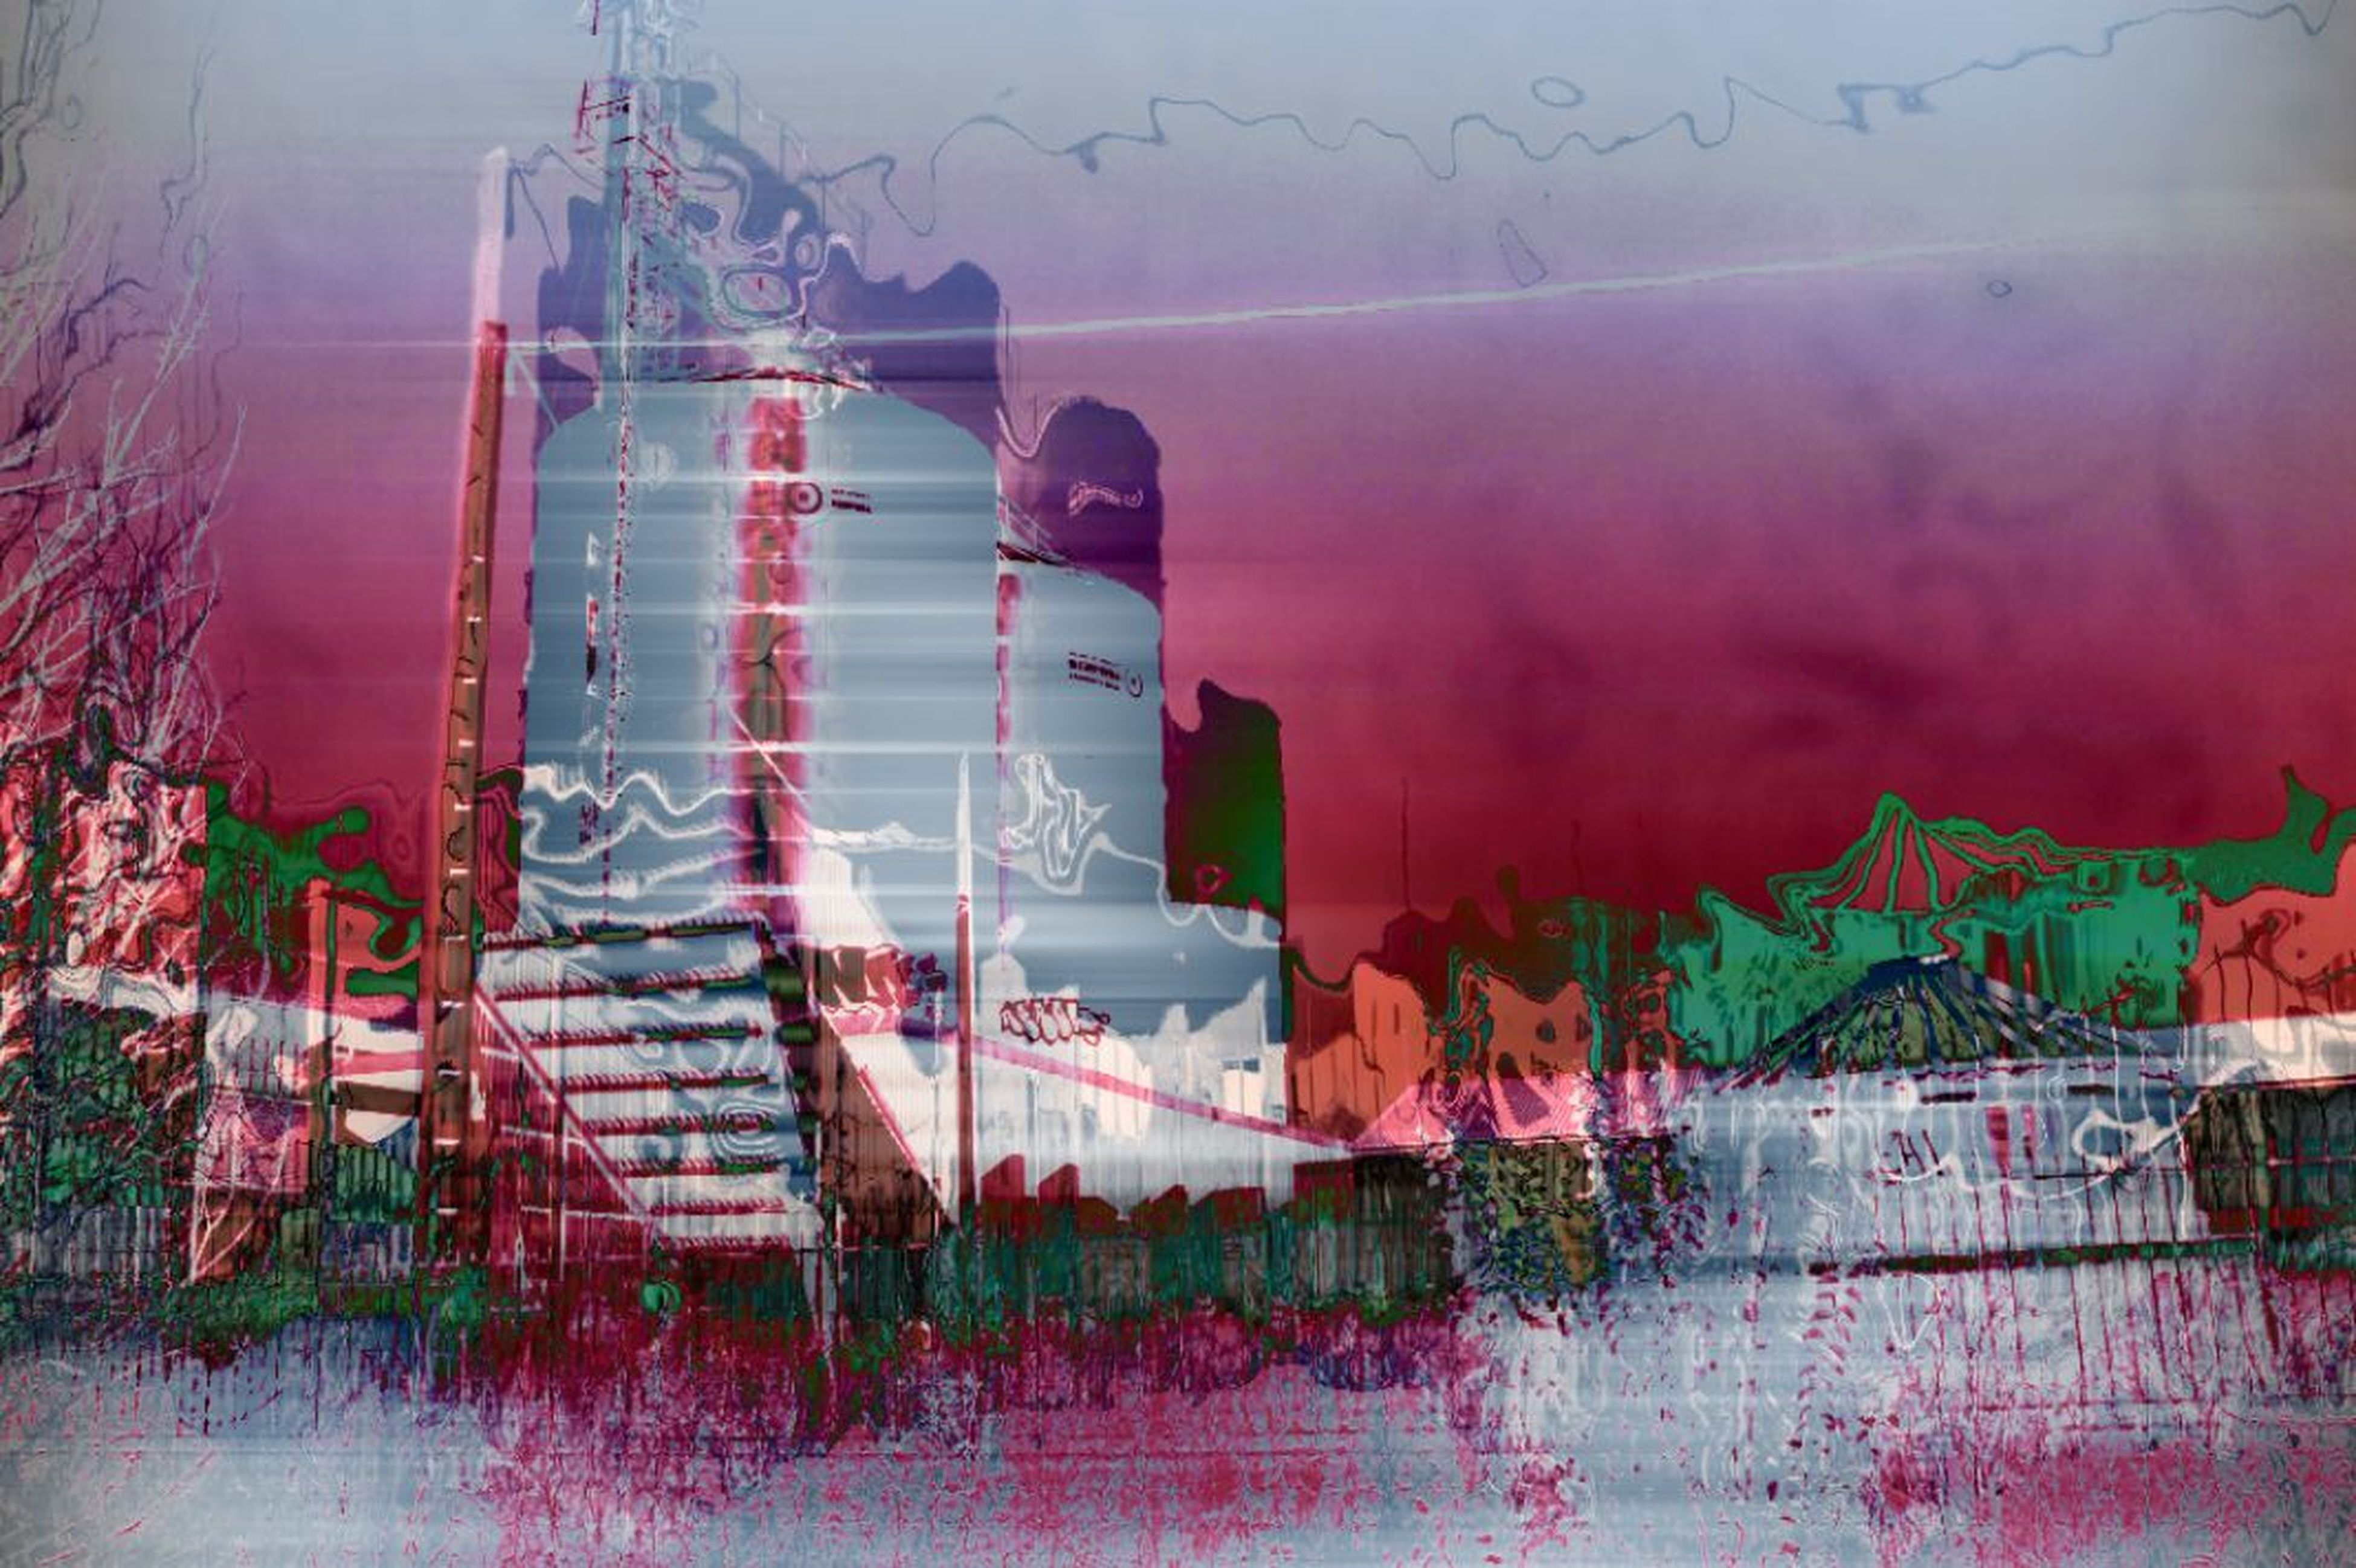 built structure, architecture, graffiti, building exterior, wall - building feature, sky, art and craft, art, outdoors, auto post production filter, day, multi colored, creativity, no people, damaged, low angle view, abandoned, reflection, water